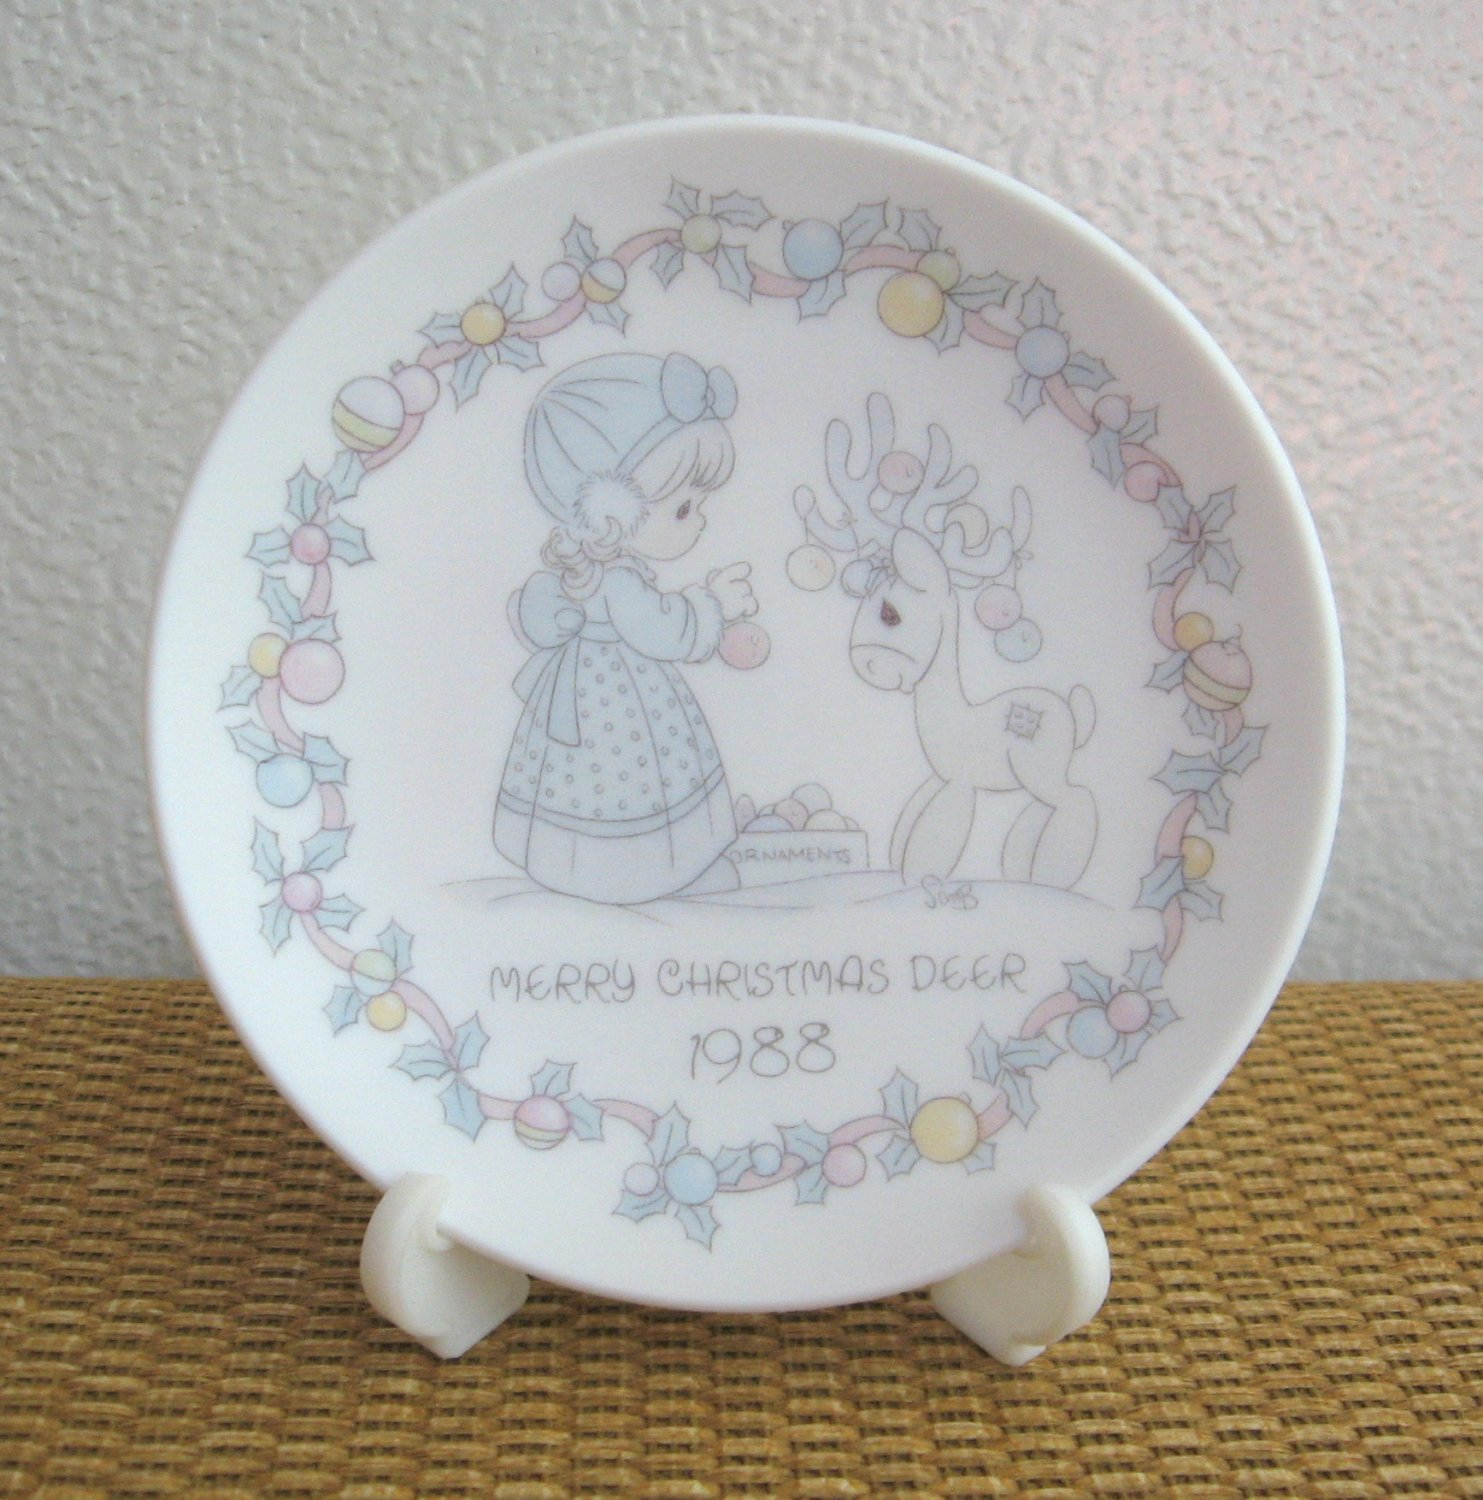 Vintage Enesco Precious Moments Merry Christmas Deer 1988 Porcelain Plate with Stand Figurine